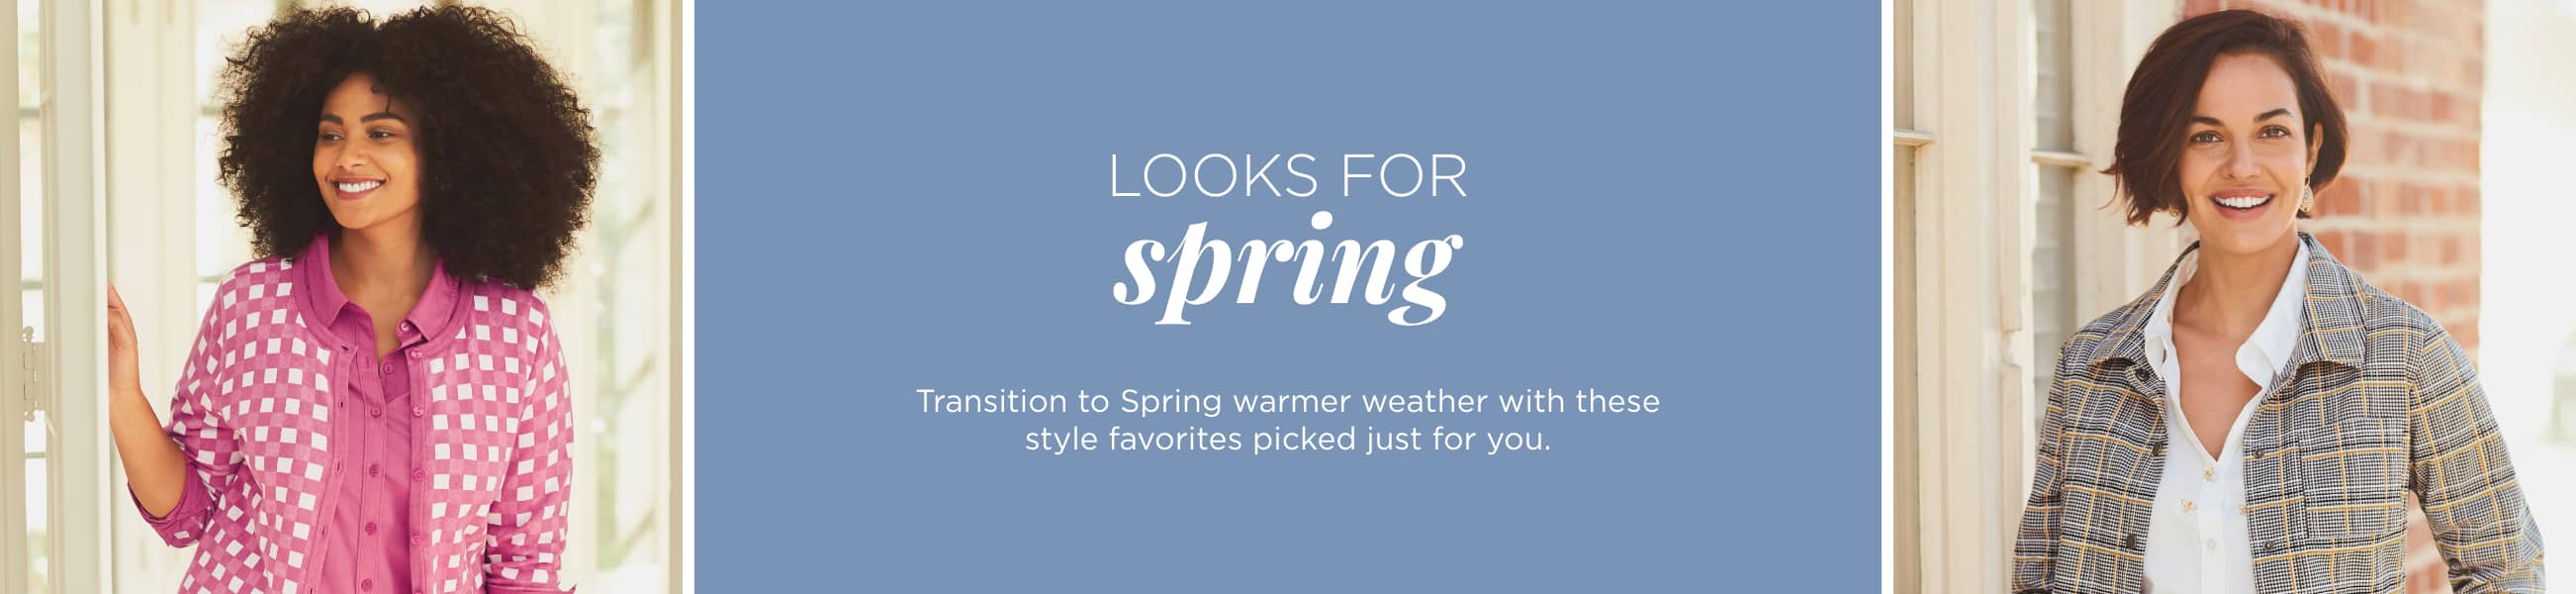 Looks For Spring! Transition to Spring warmer weather with these style favorites picked just for you.